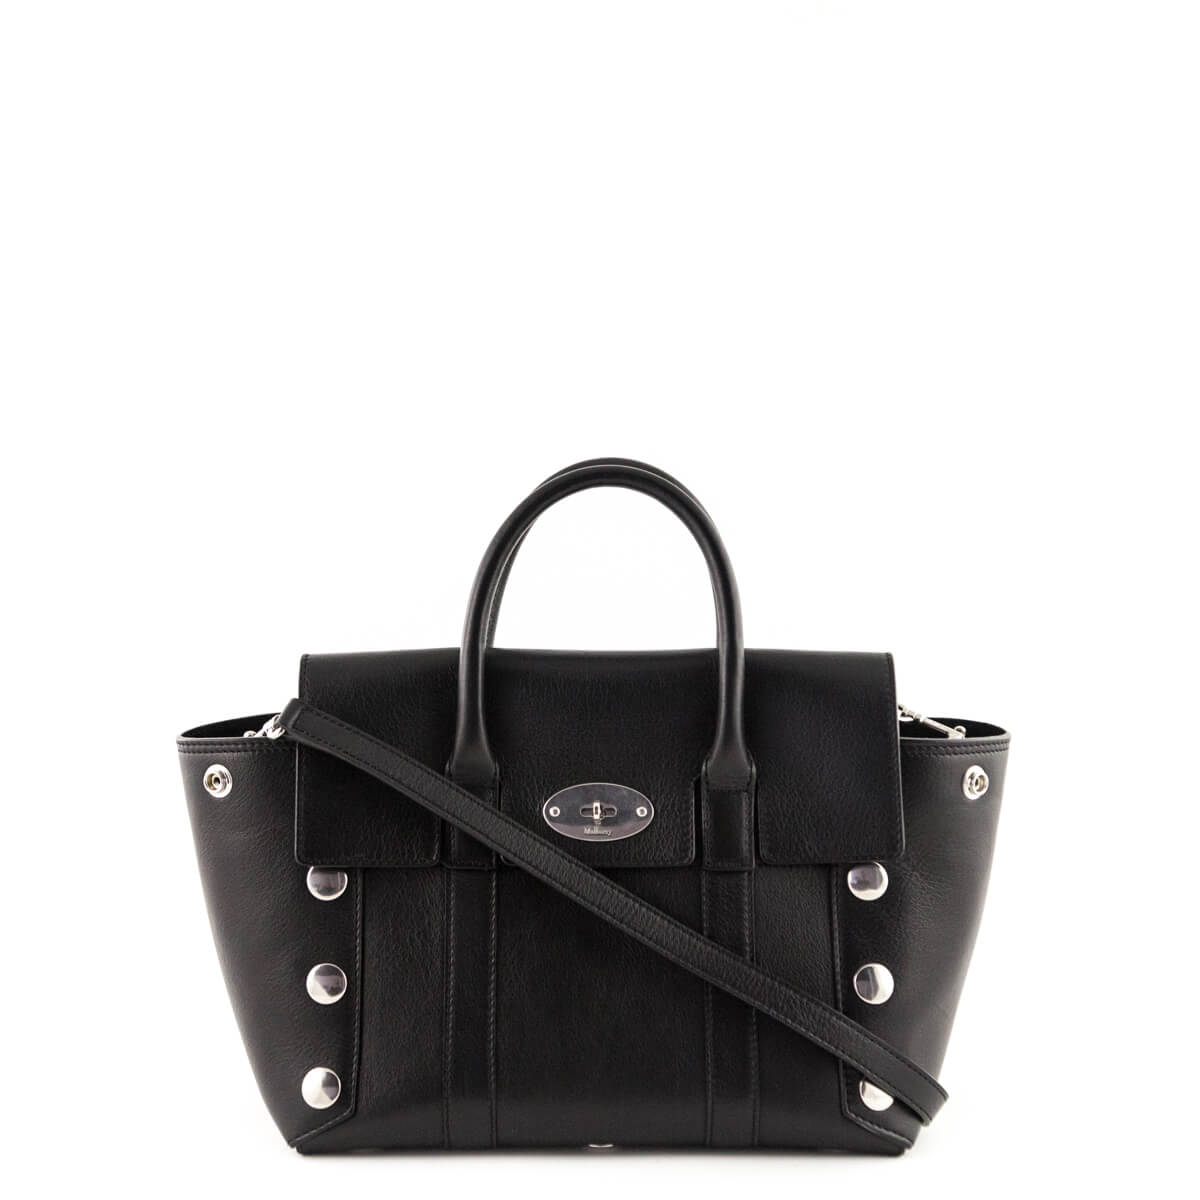 ... best price mulberry black calfskin small studded new bayswater tote  love that bag preowned authentic designer 38bcb45ea25e3